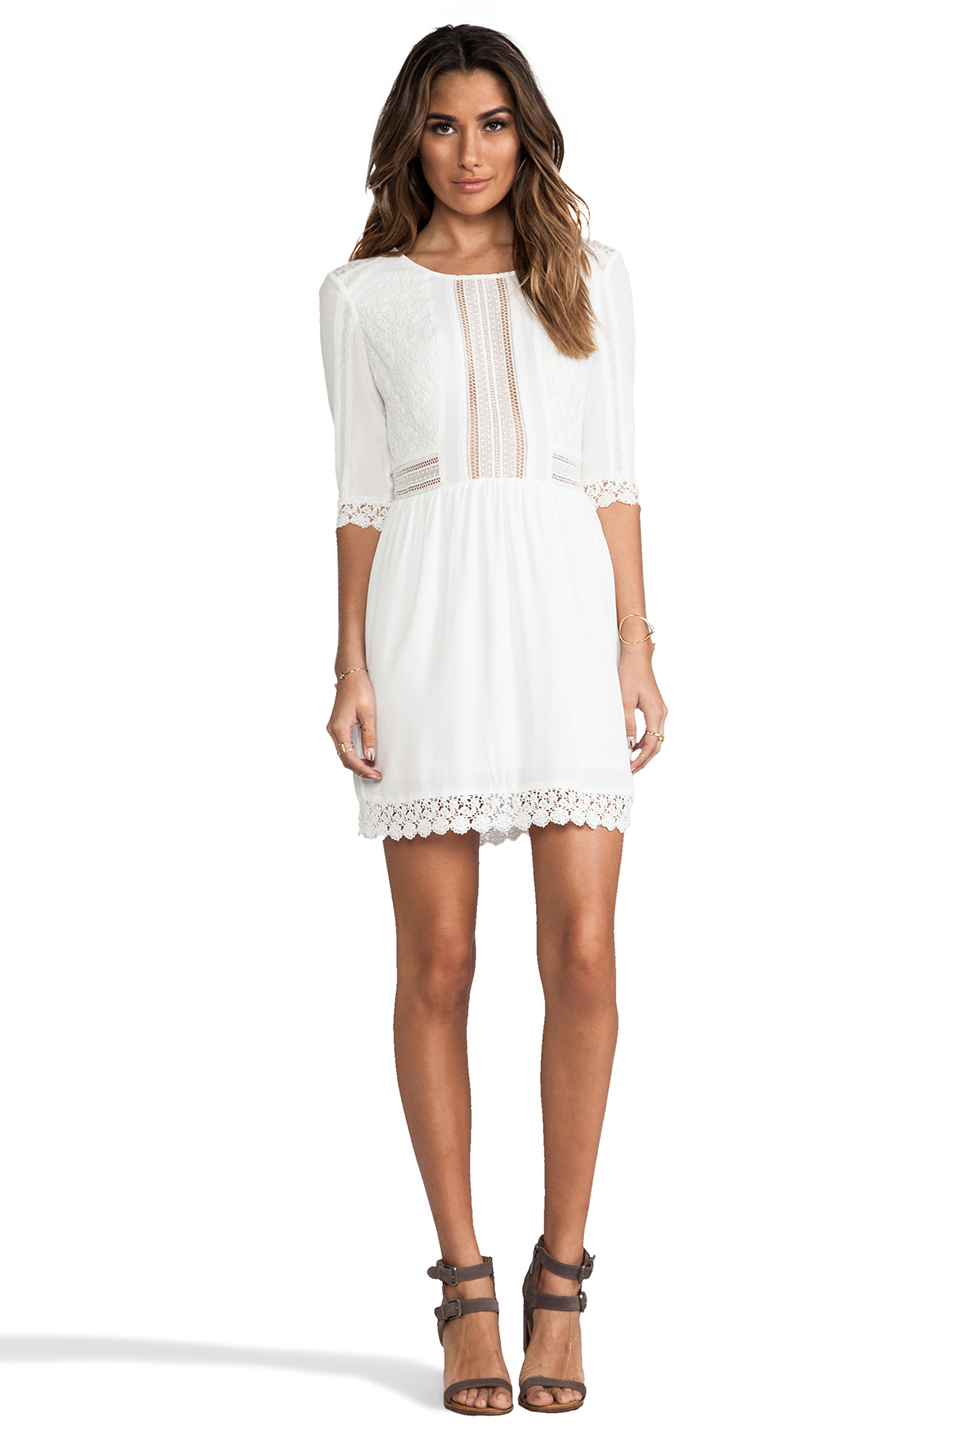 heartLoom Aimee Dress in White | REVOLVE